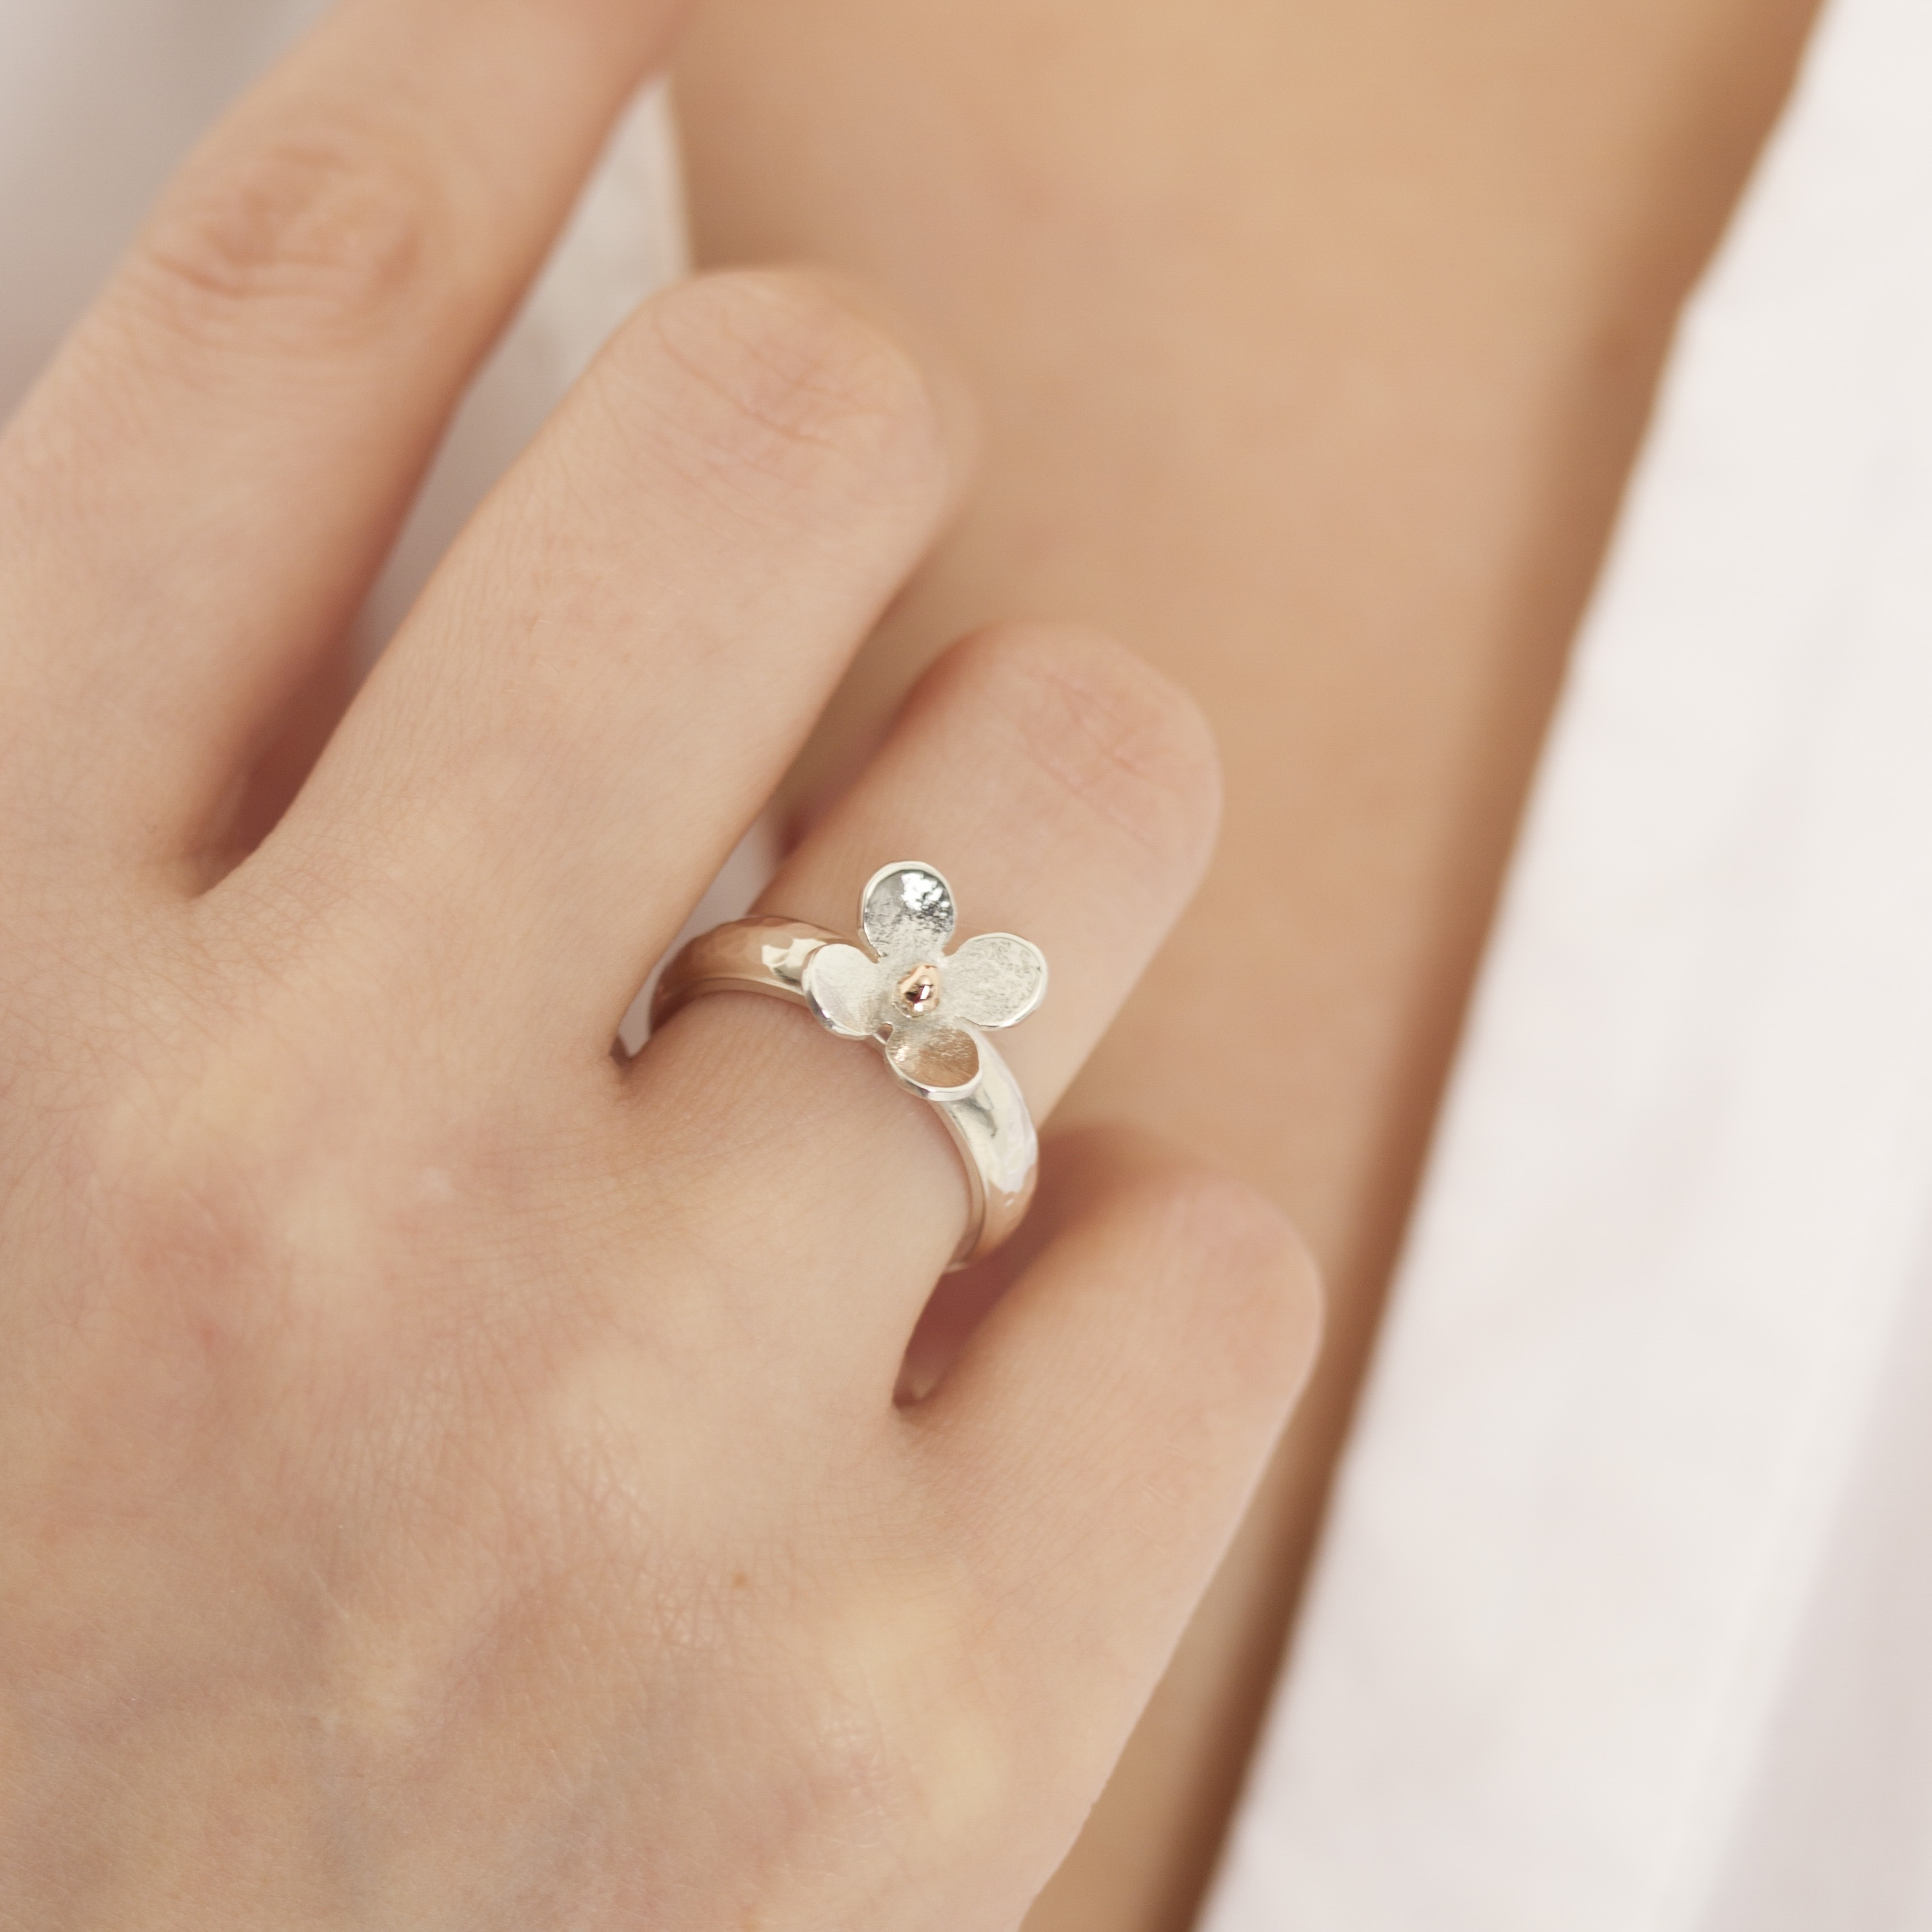 personalised silver ring with daisy